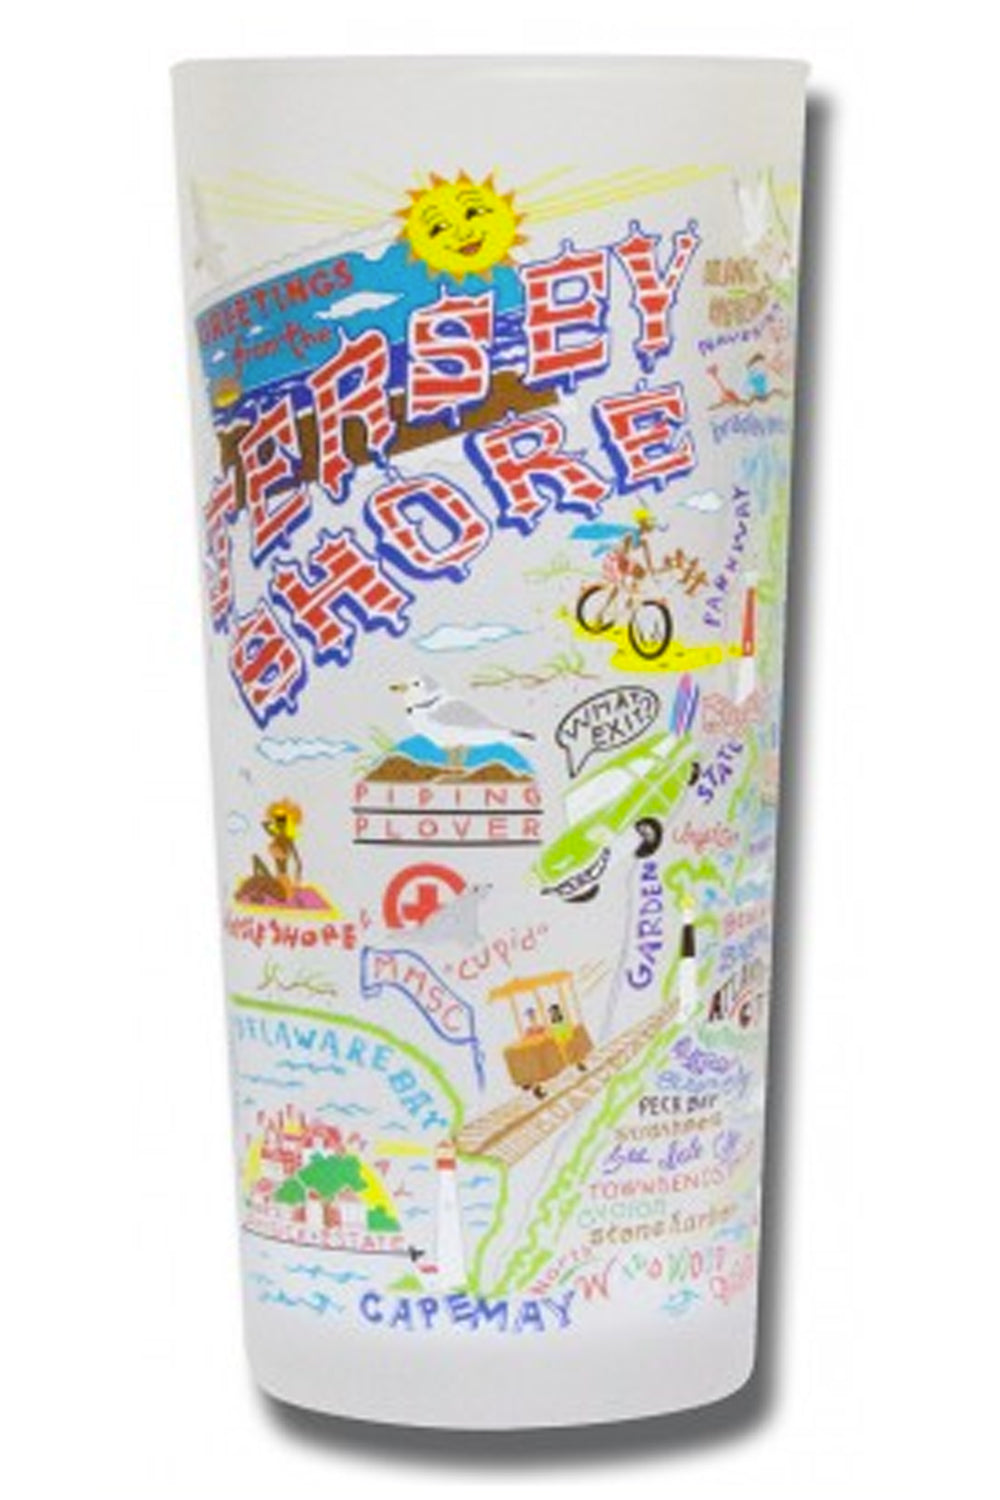 CS Frosted Glass Tumbler Cup - Jersey Shore